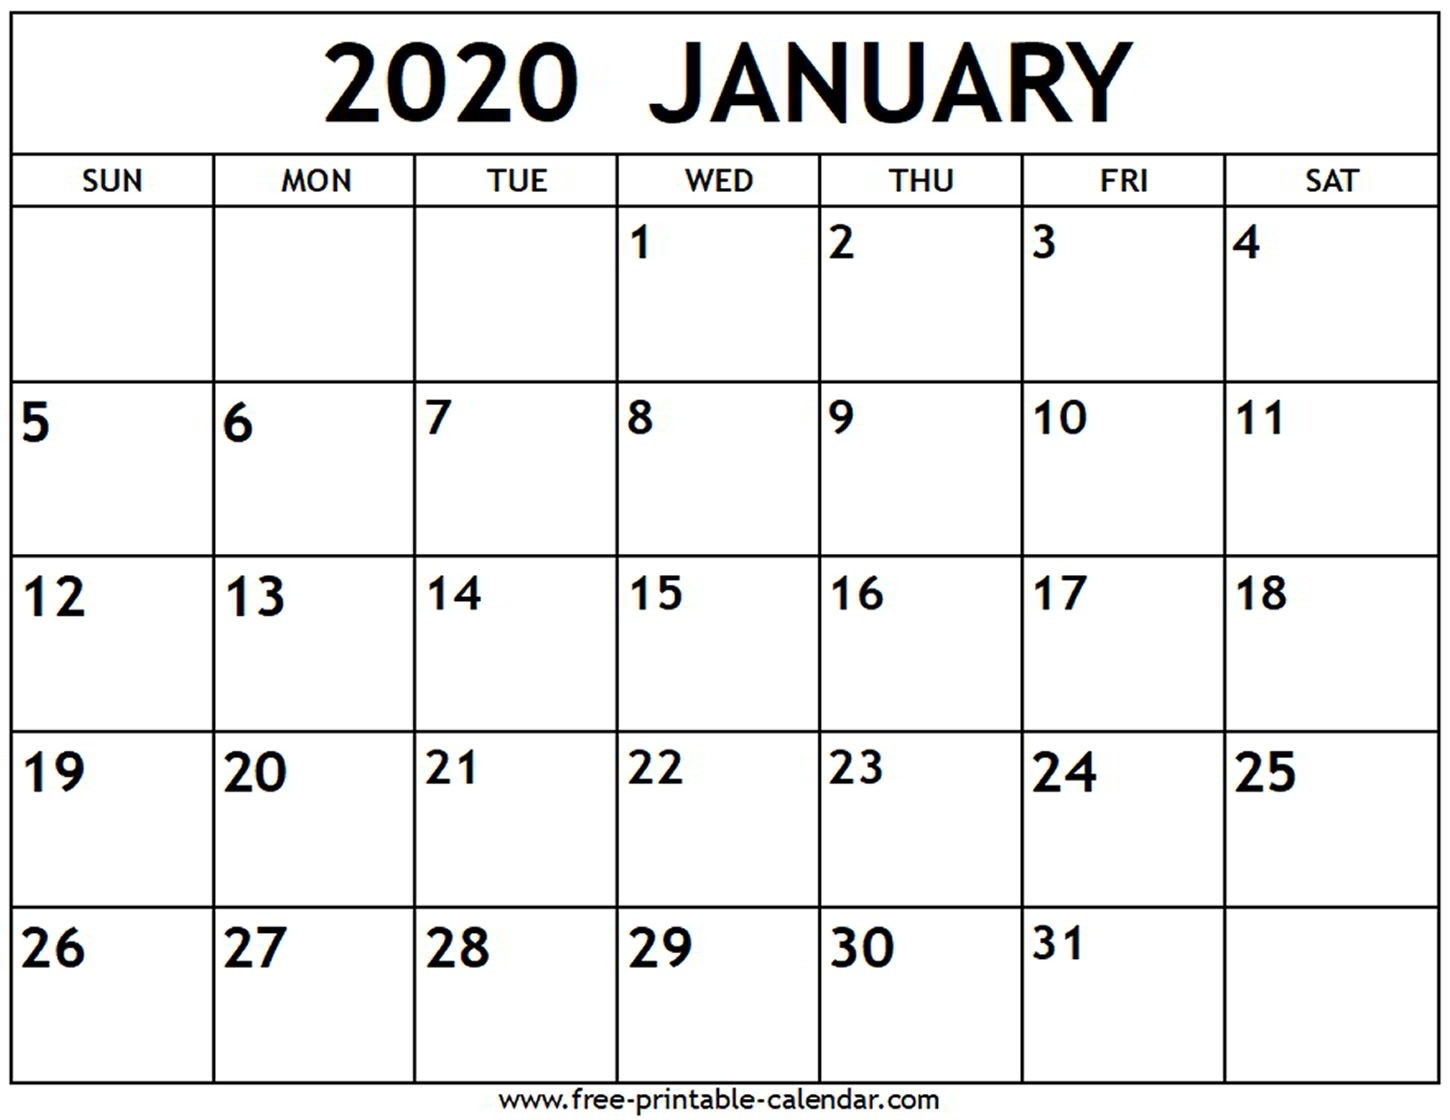 January 2020 Calendar - Free-Printable-Calendar-Printable Calendar Of January 2020